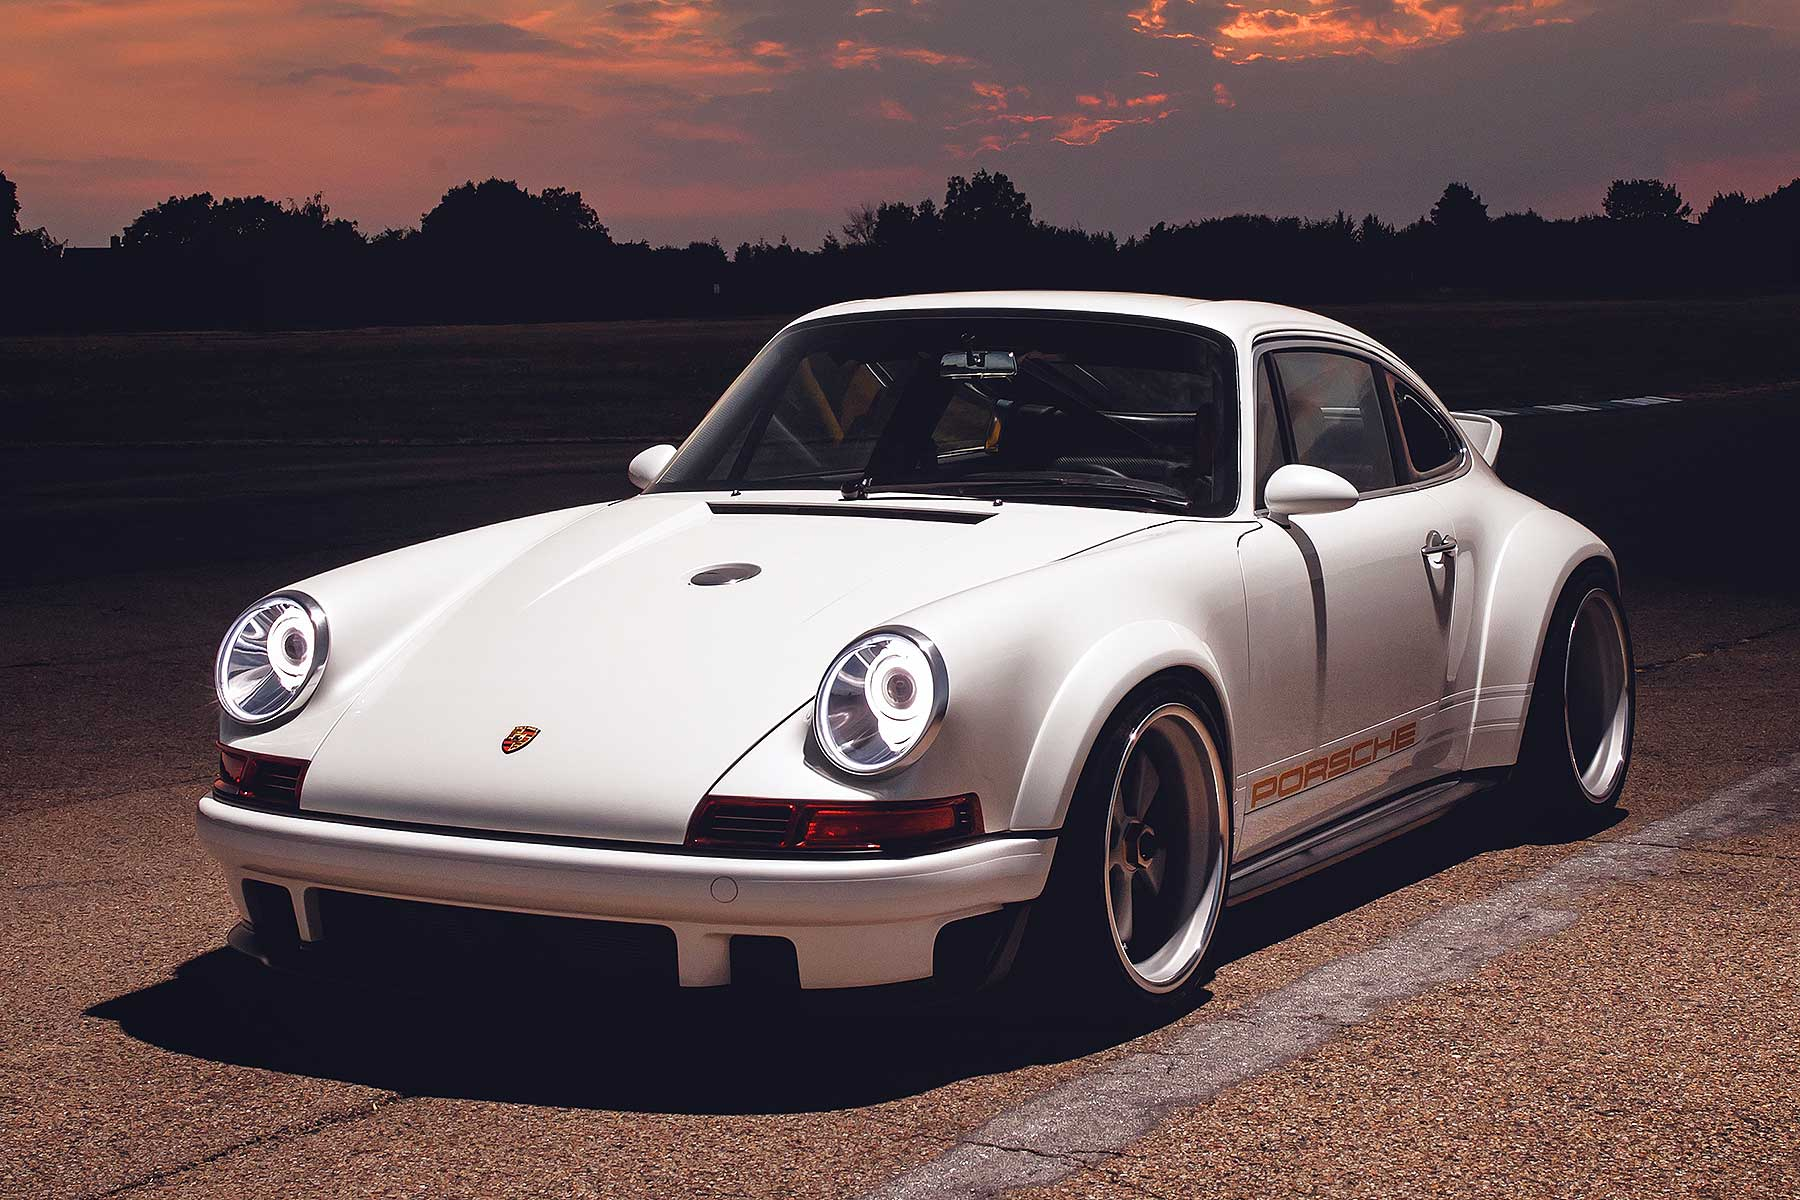 Singer And Williams Create The World S Most Advanced Retro Porsche 911 Motoring Research